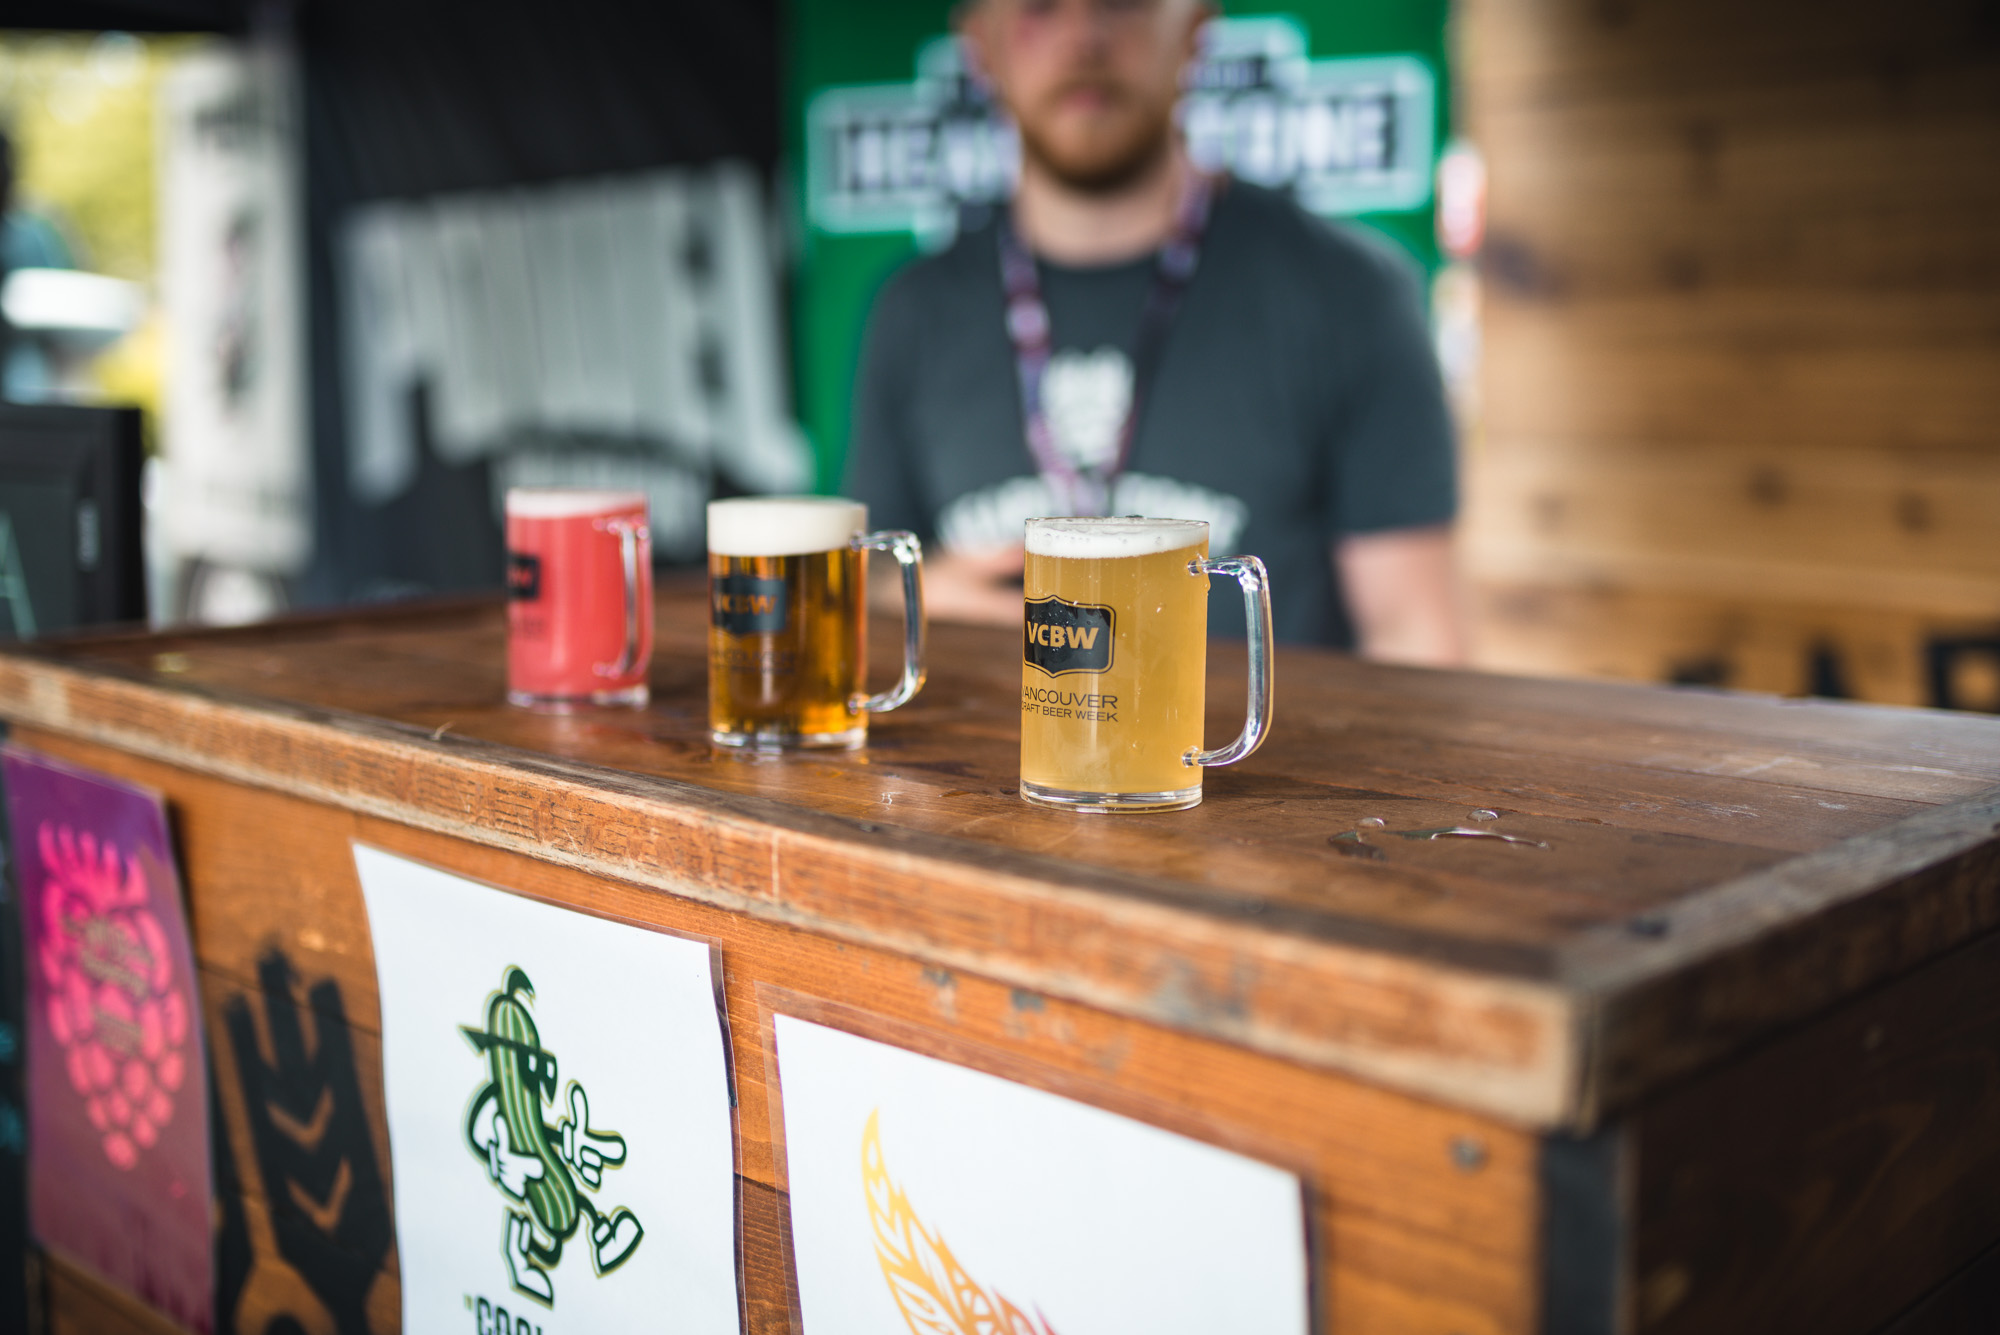 hearthstone brewing vcbw vancouver craft beer week festival vanpours PNE